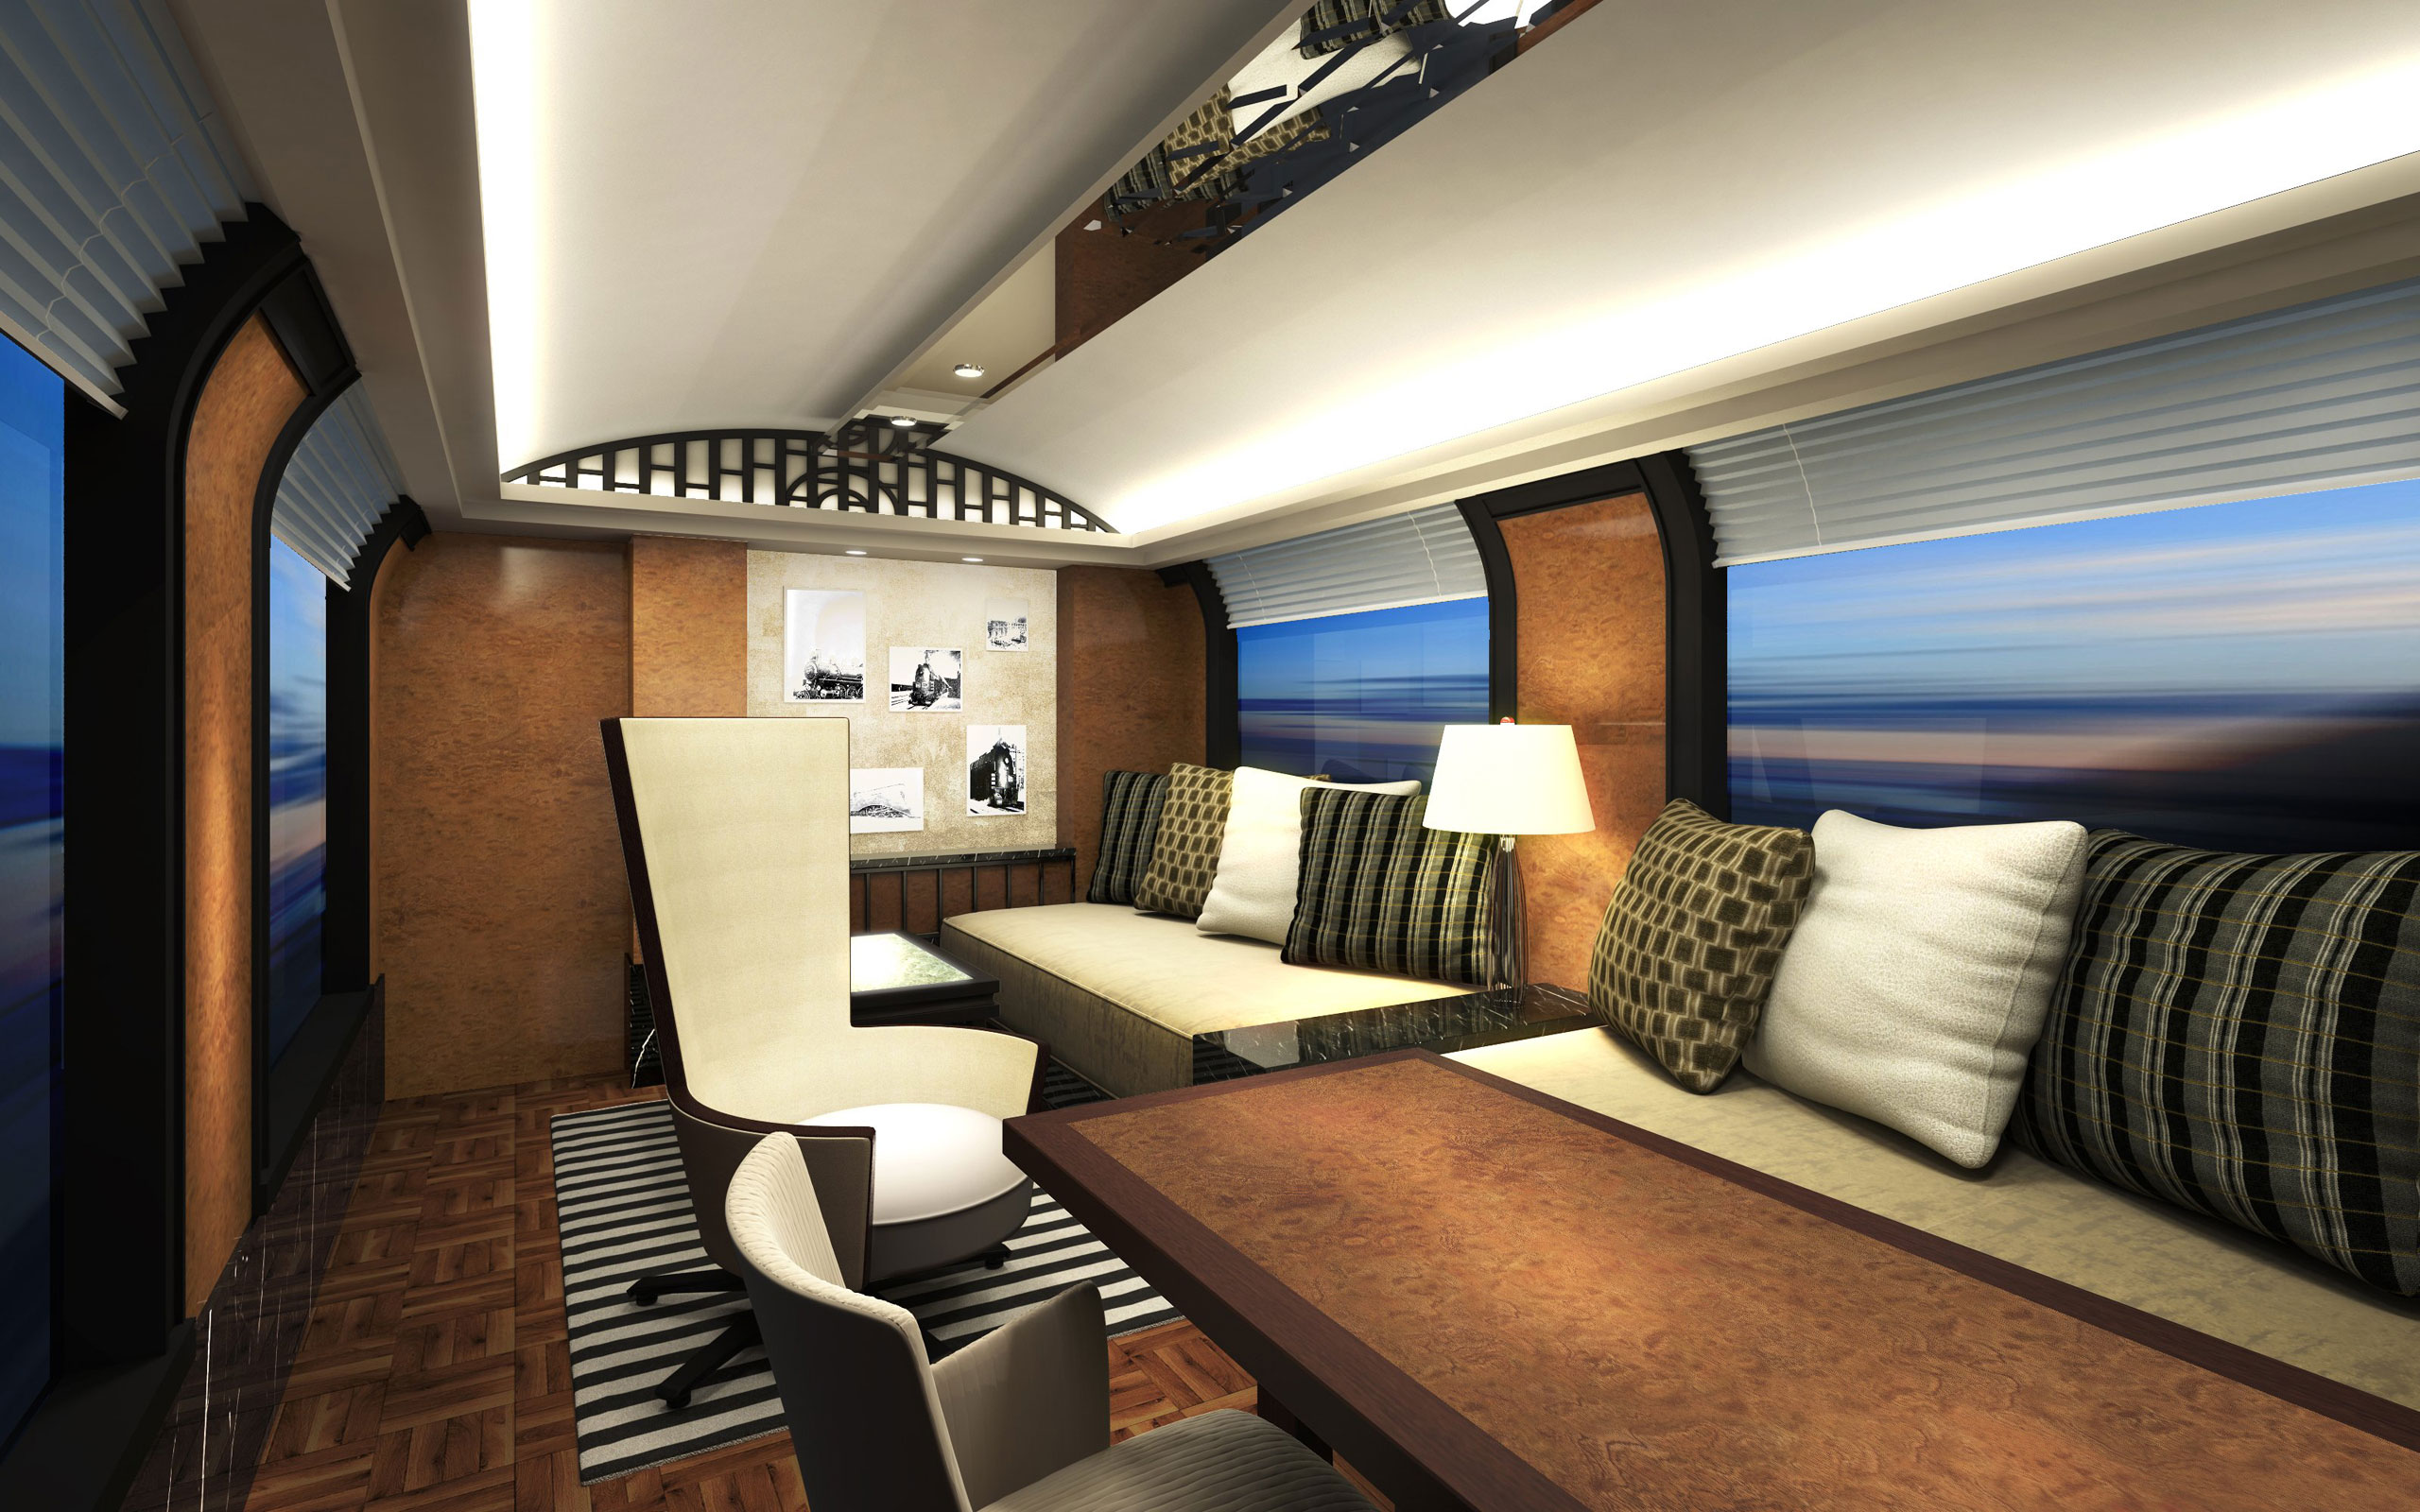 A view of a deluxe suite living room on JR West's cruise train.